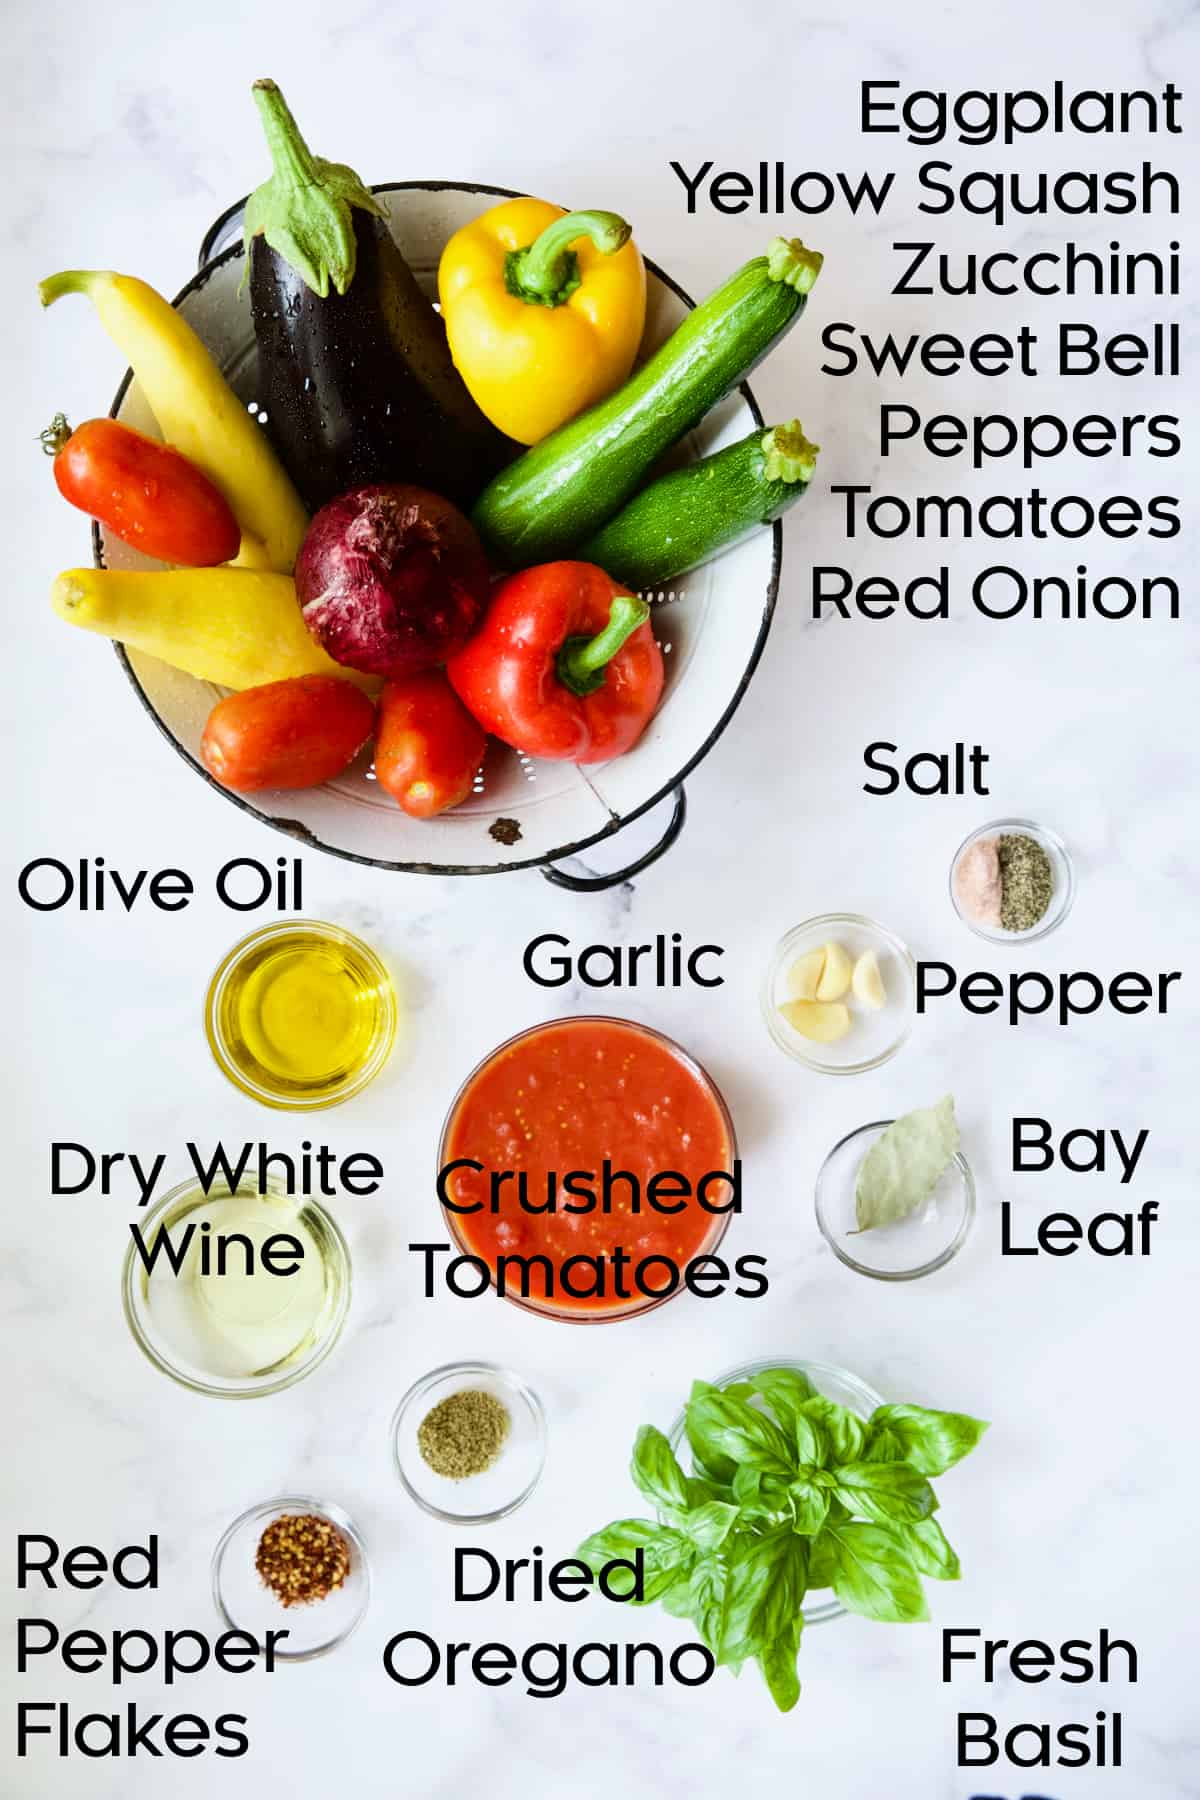 Ingredients for Classic French Ratatouille in glass bowls.